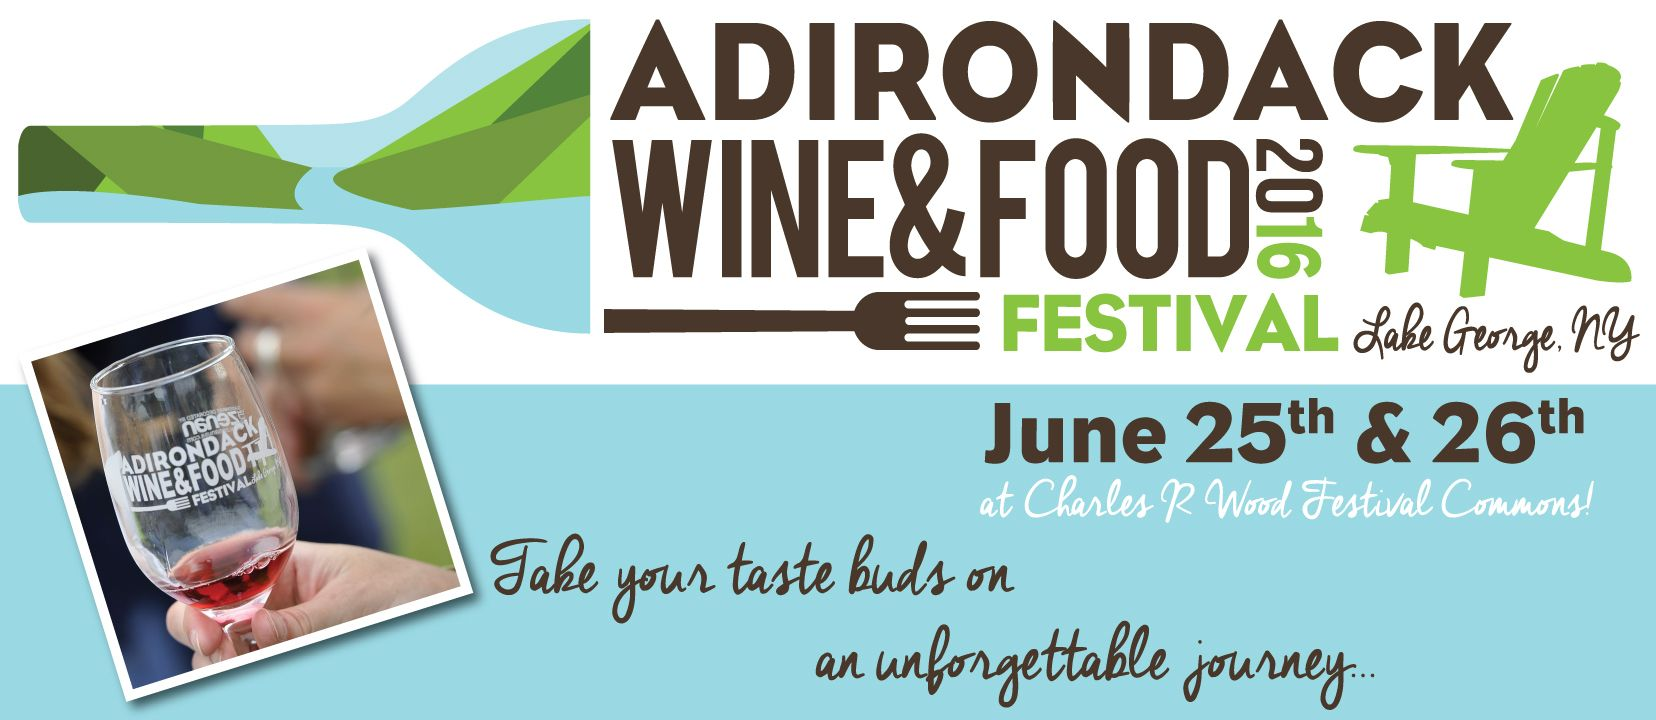 Adirondack Wine Food Festival June 25 26 Lake George Ny